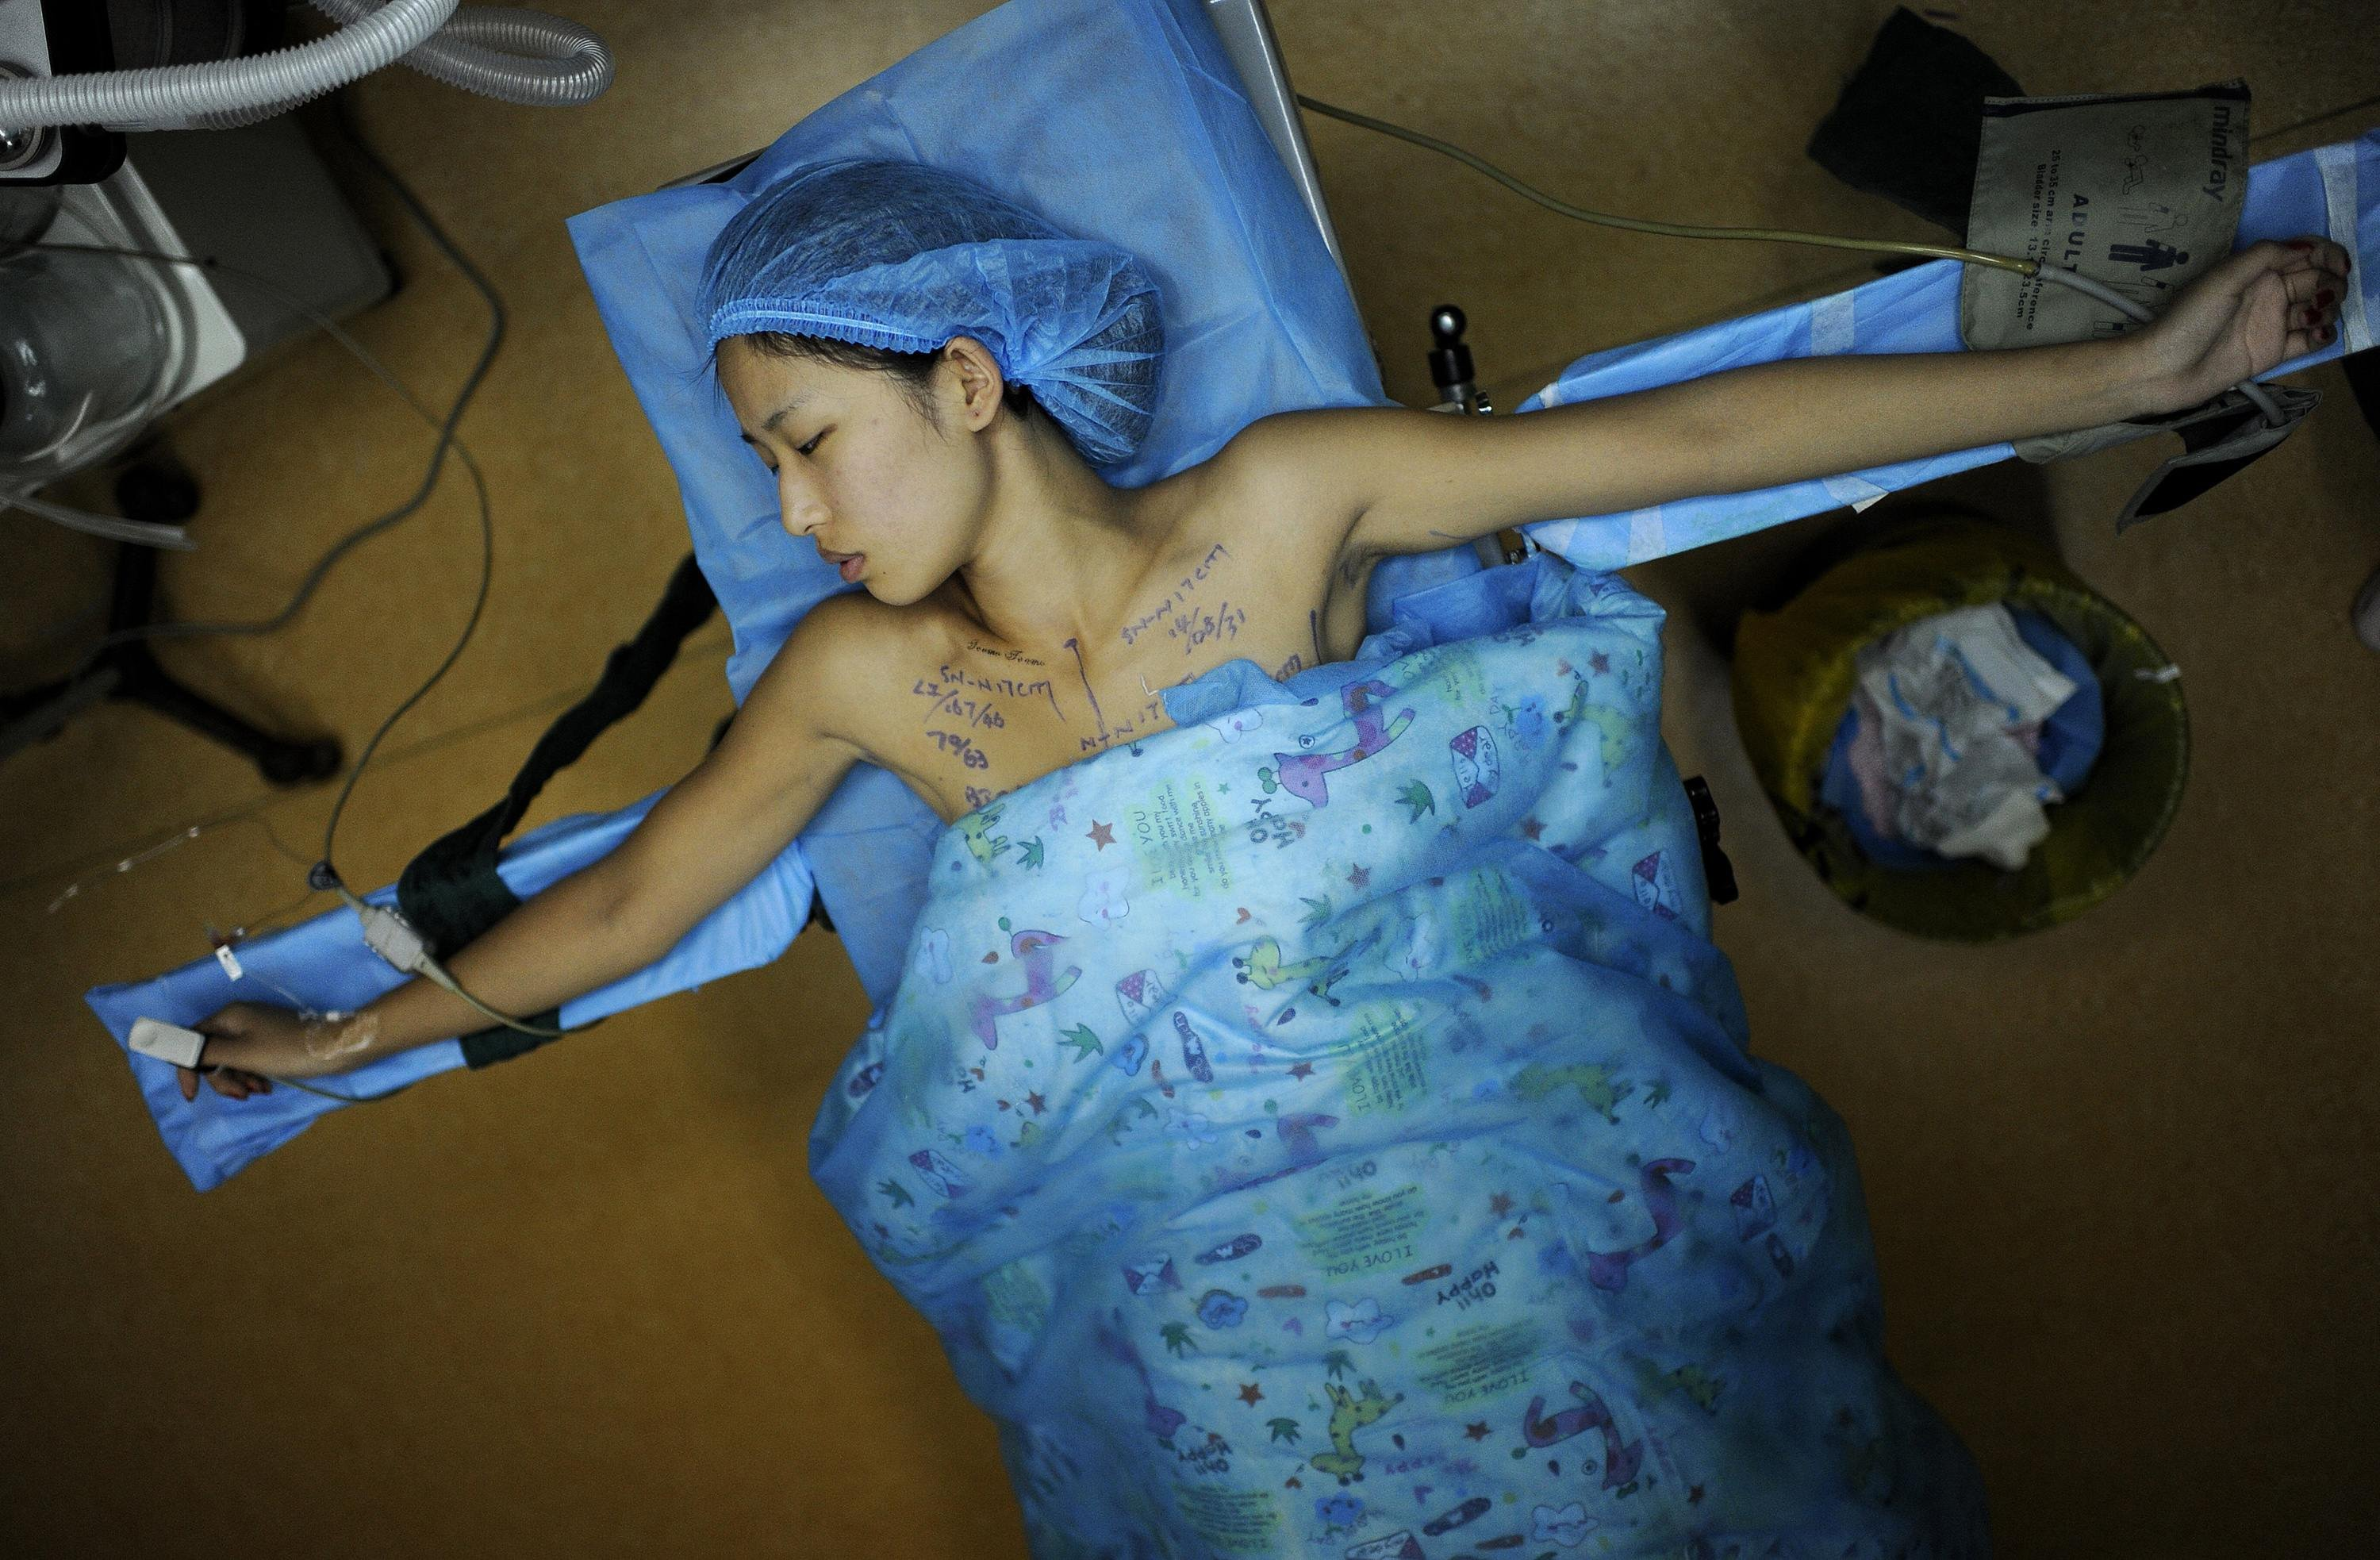 Feifei, 21, undergoes breast implant surgery at a hospital in Hefei, Anhui province, China on Sept. 1, 2014. Feifei, a third-year university student and a part-time model, received a free breast implant surgery in return for advertising for the hospital. Around 10 days after the operation, she won a prize at a local beauty contest.